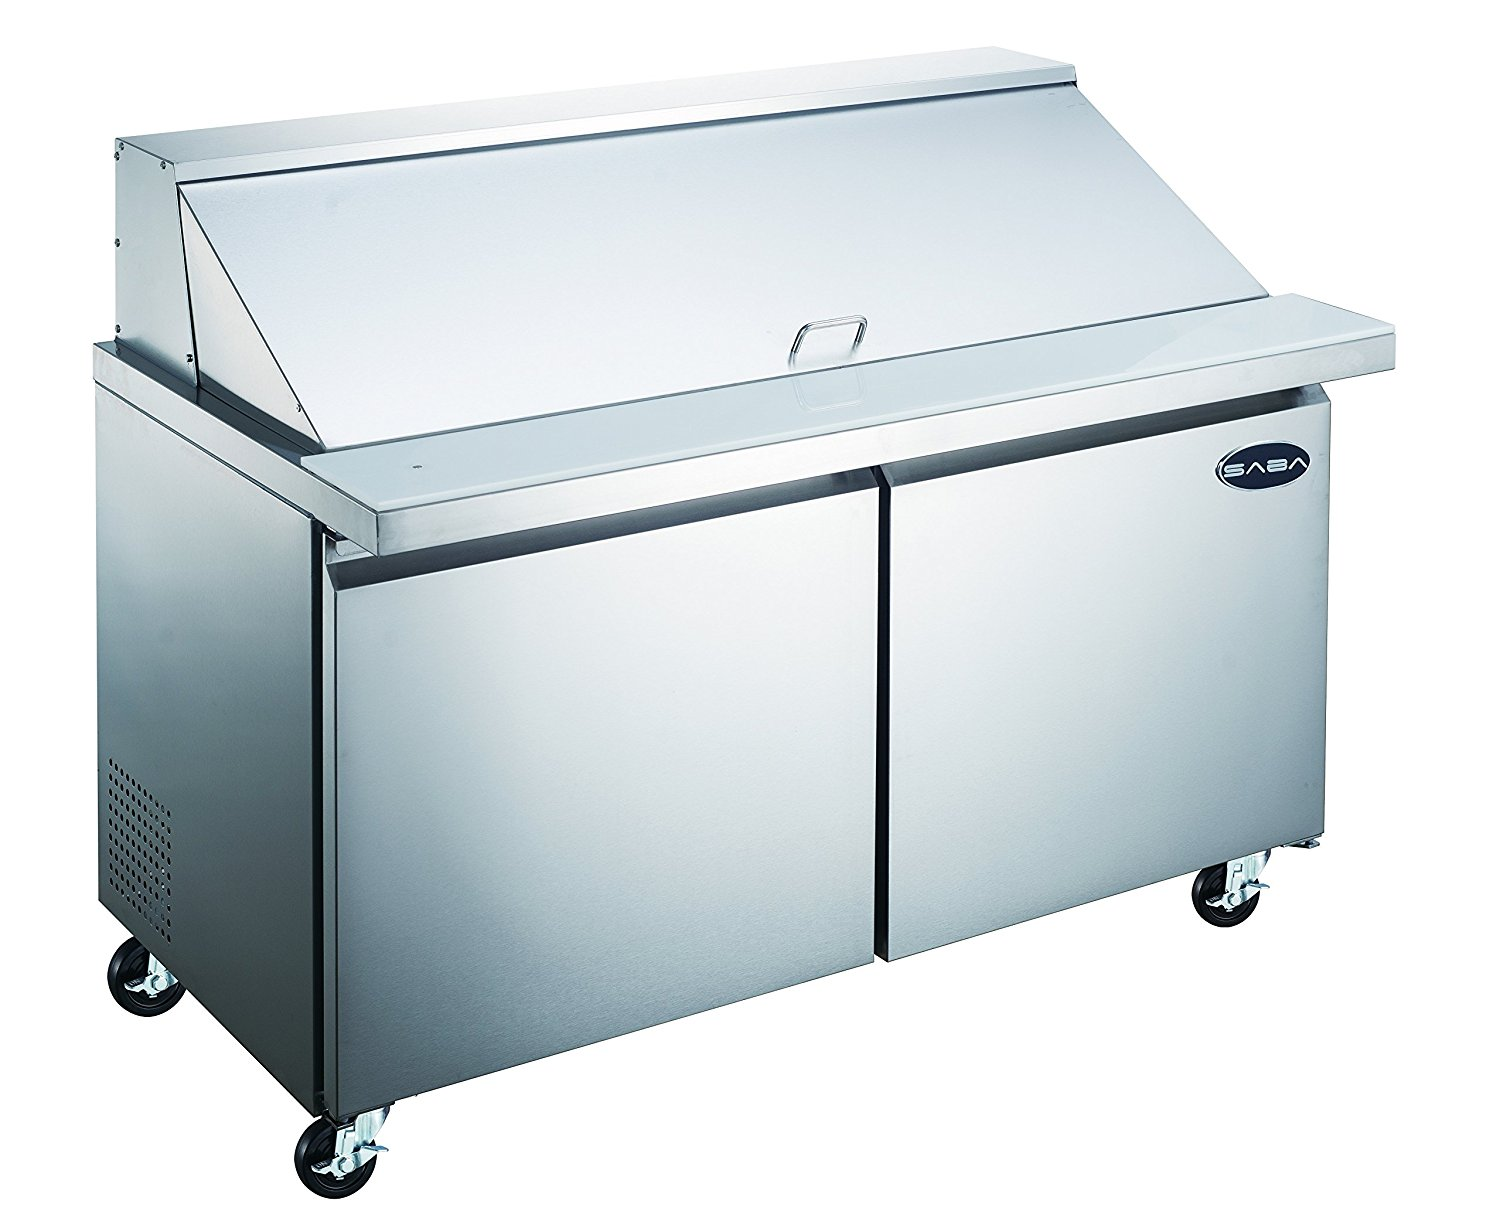 SABA Heavy Duty Commercial Stainless Steel Mega Prep Table Refrigerator Cooler 2 Door 60""